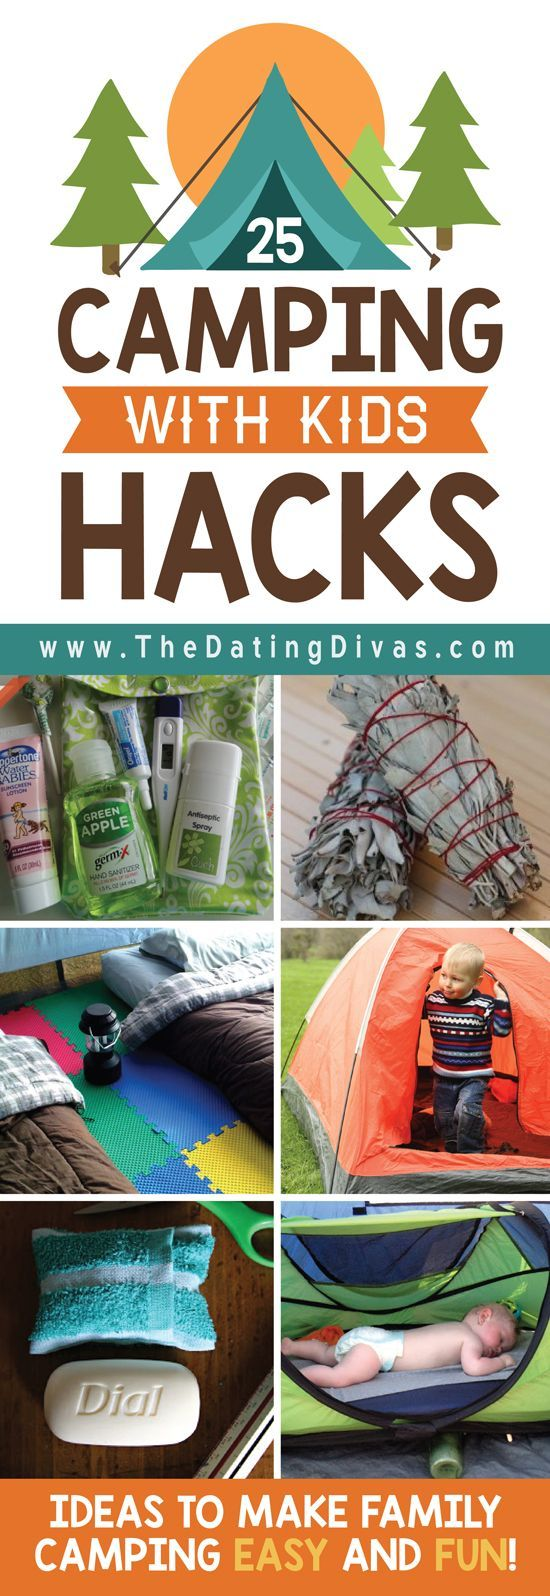 Over 100 Ideas For Camping With Kids From